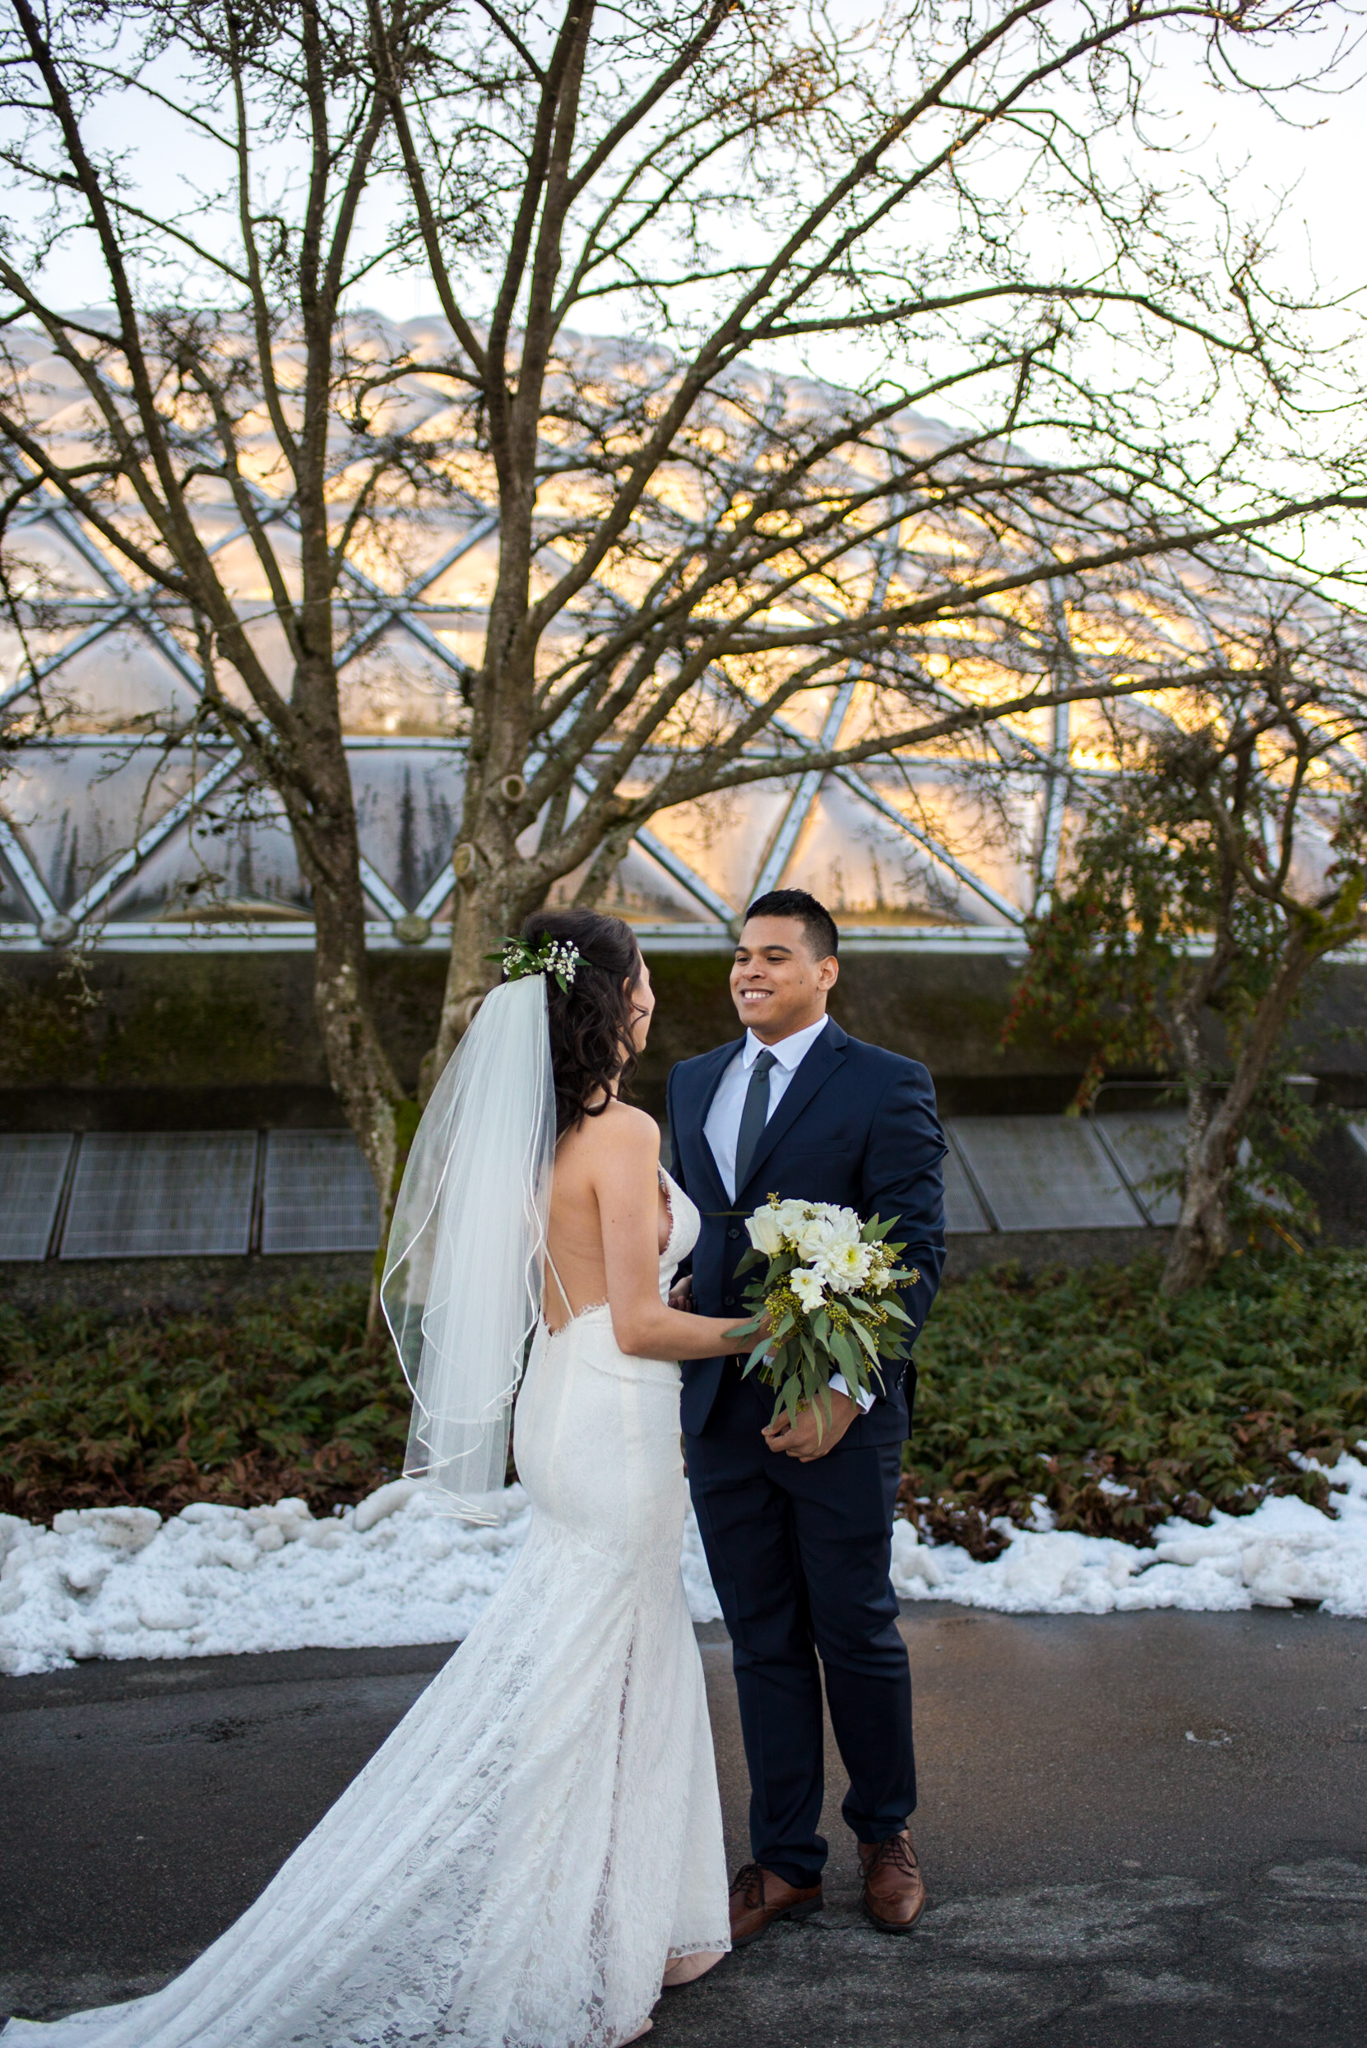 Queen Elizabeth Park Wedding Photographer-10.jpg